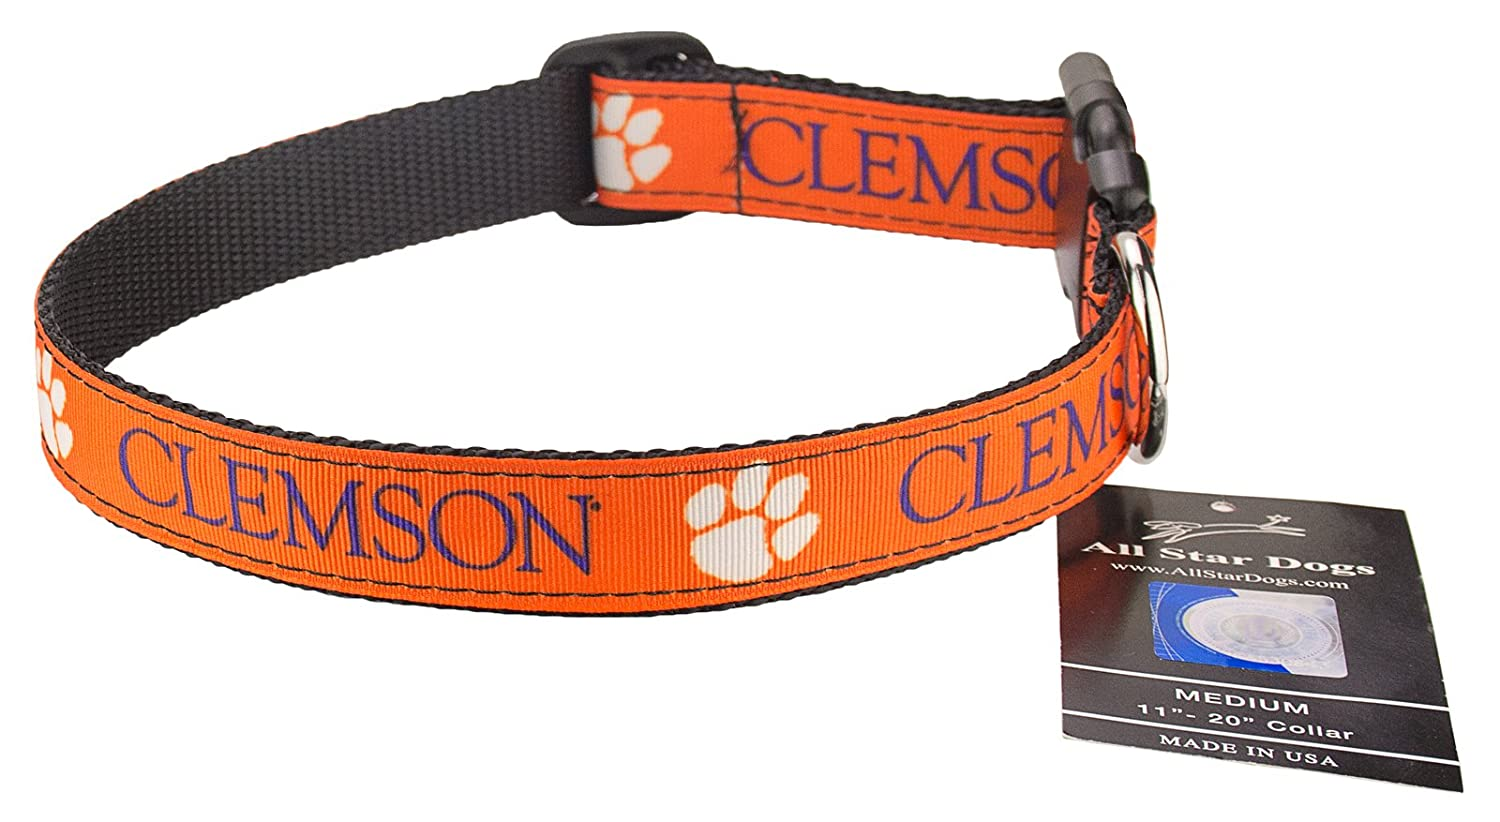 Lg 1in w Fits 19in-30in Clemson Tigers Ribbon Dog Collar Large